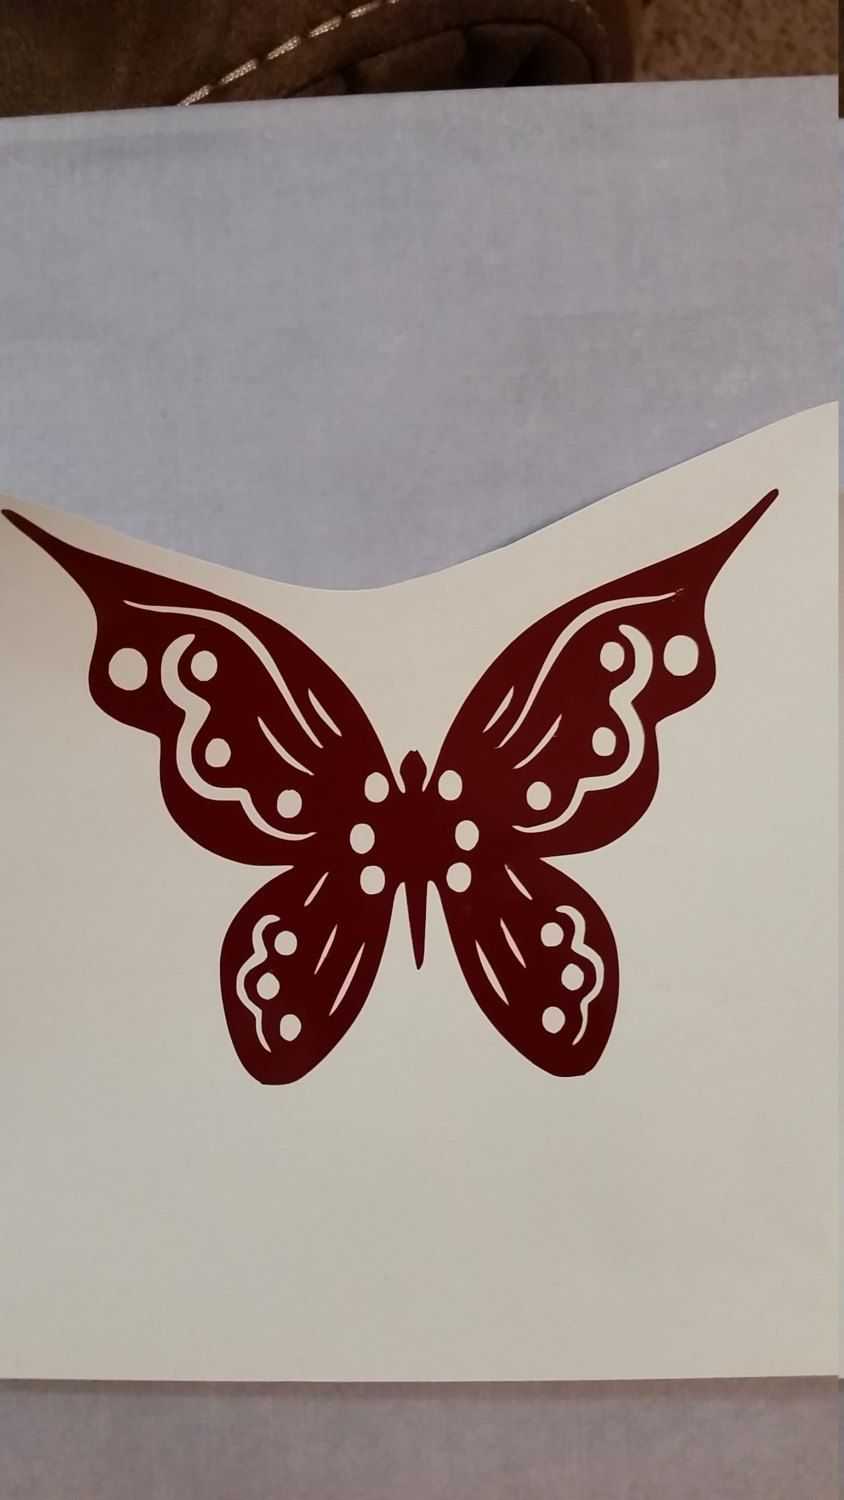 Butterfly Vinyl Decal By LollysGoodies On Etsy Butterflies - Butterfly vinyl decals